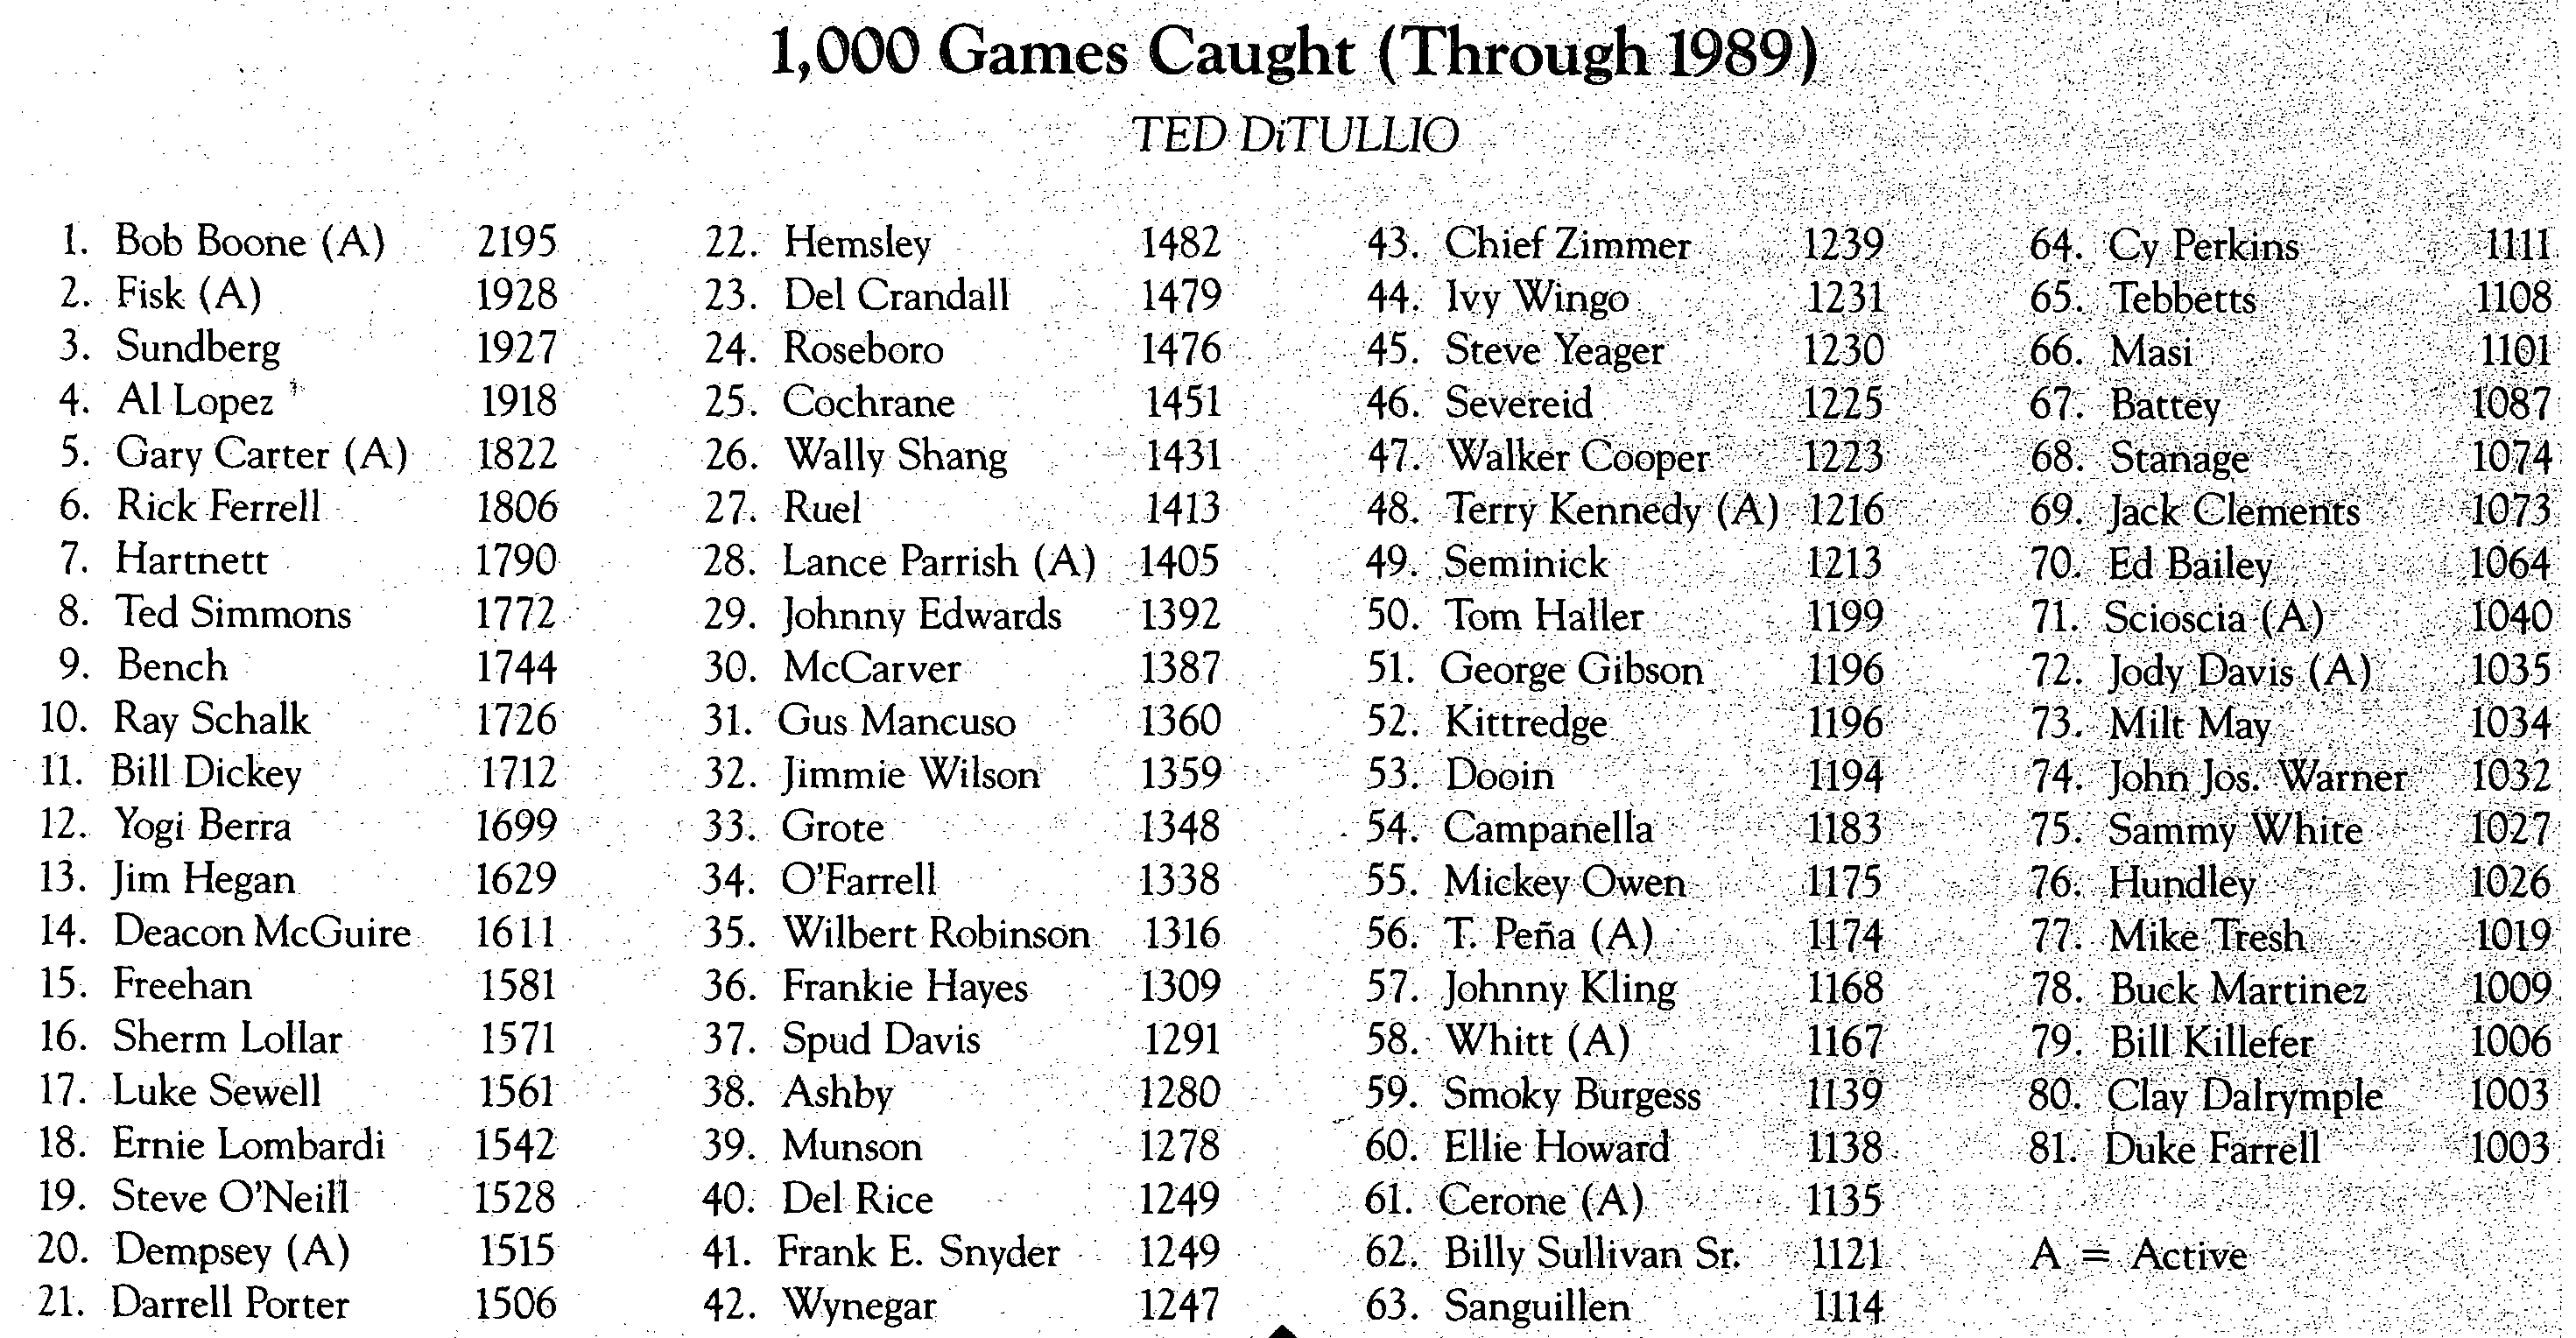 1,000 Games Caught Through 1989 (TED DITULLIO)